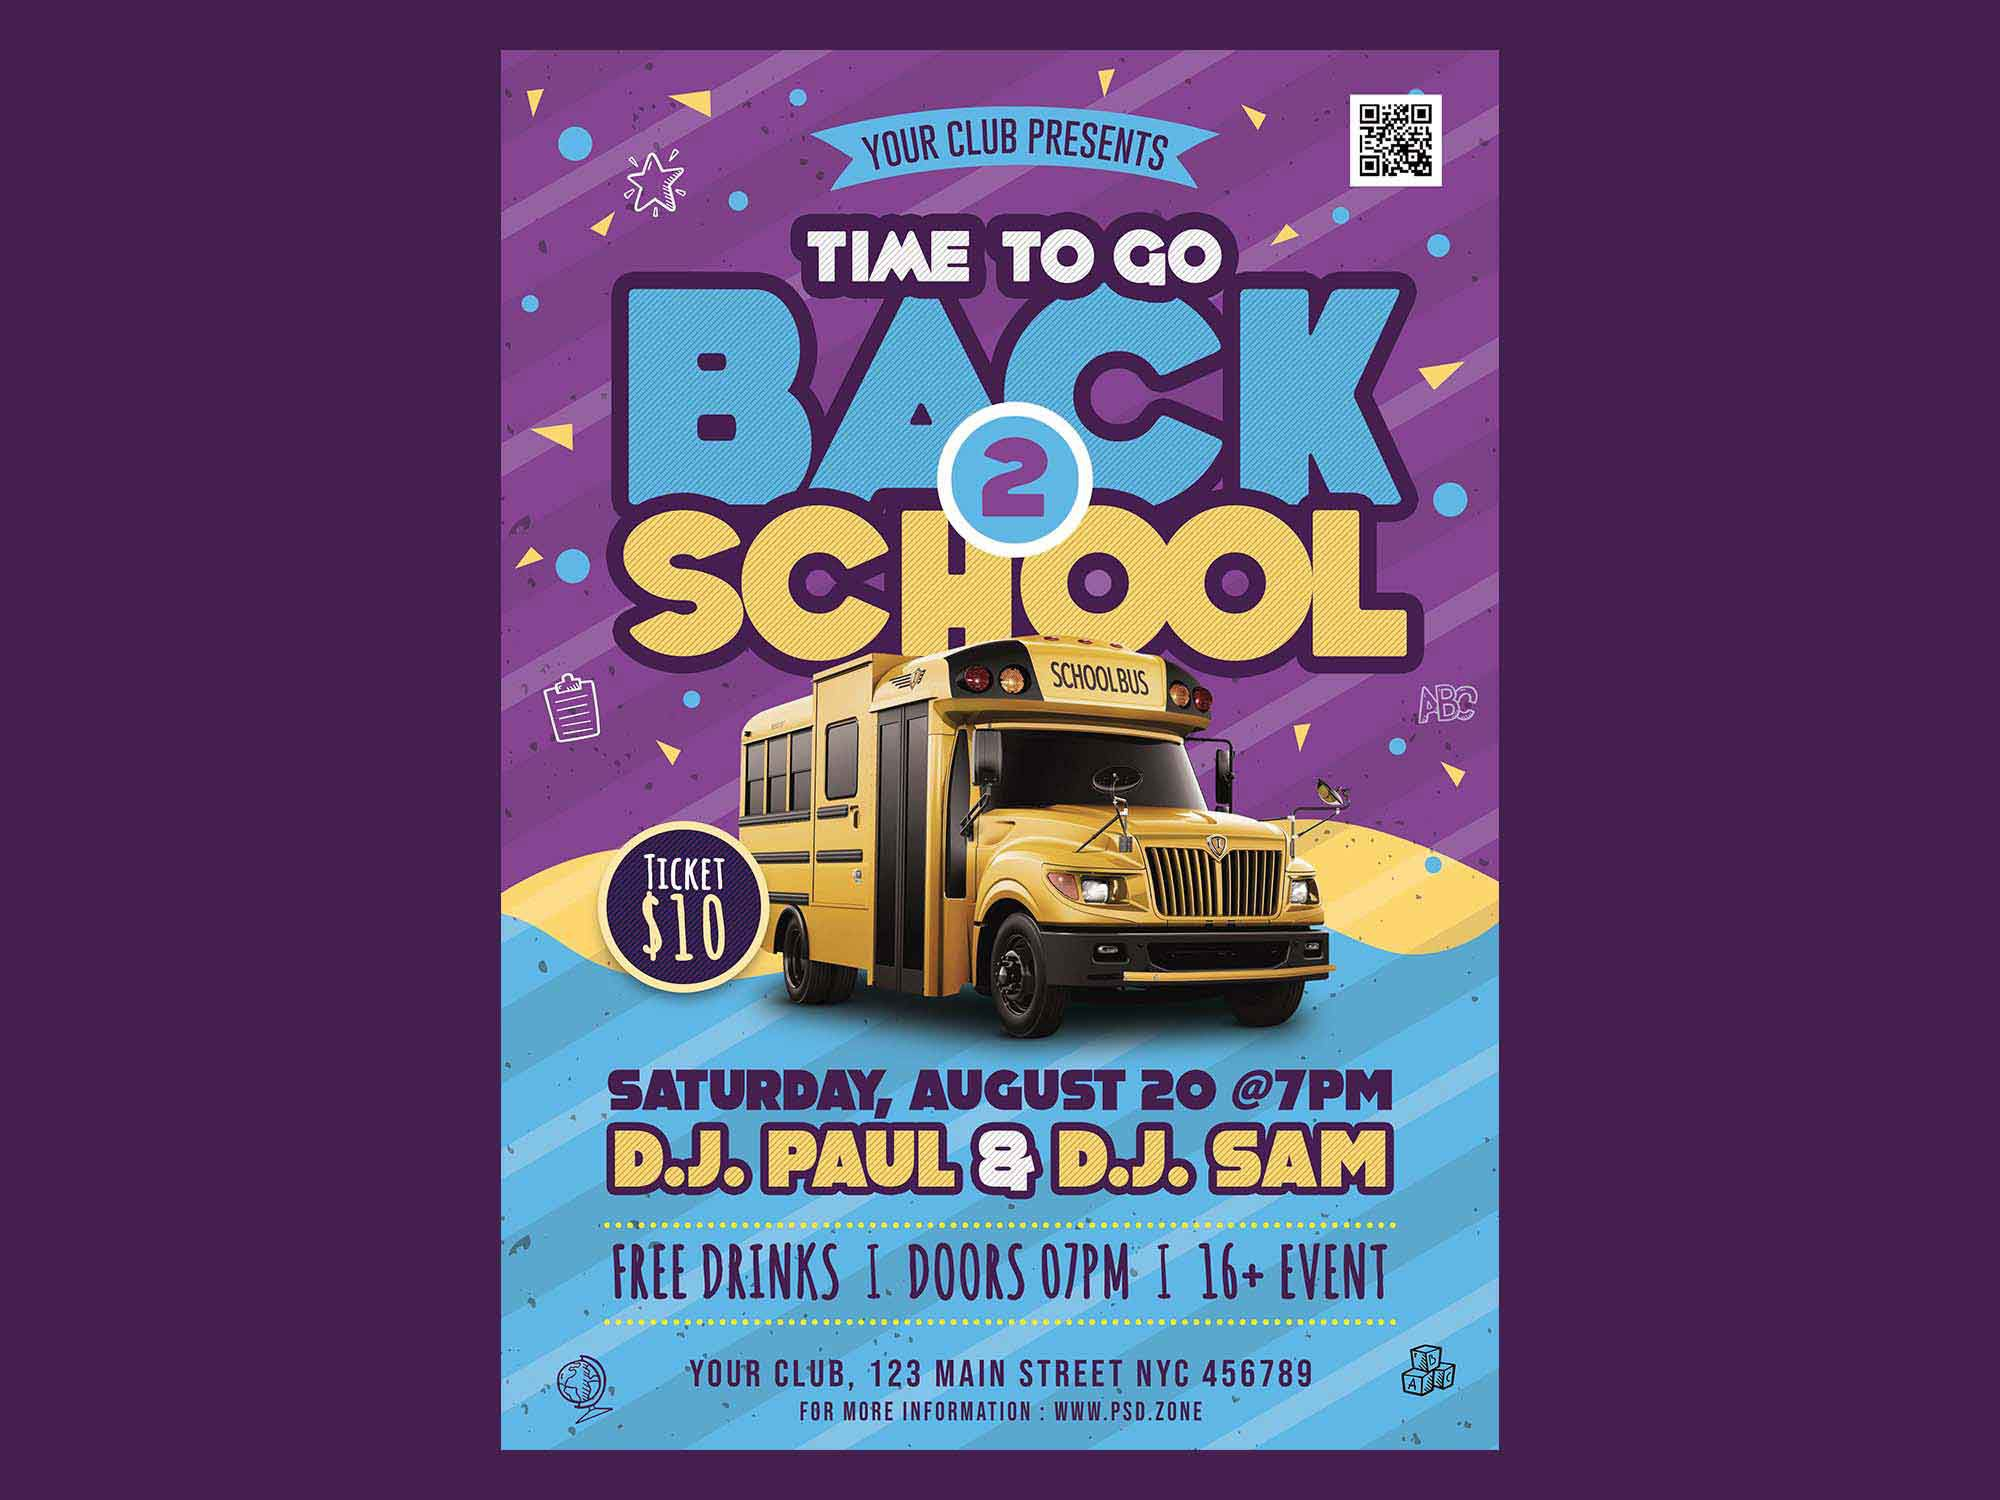 005 Phenomenal Free Back To School Flyer Template Psd Inspiration Full